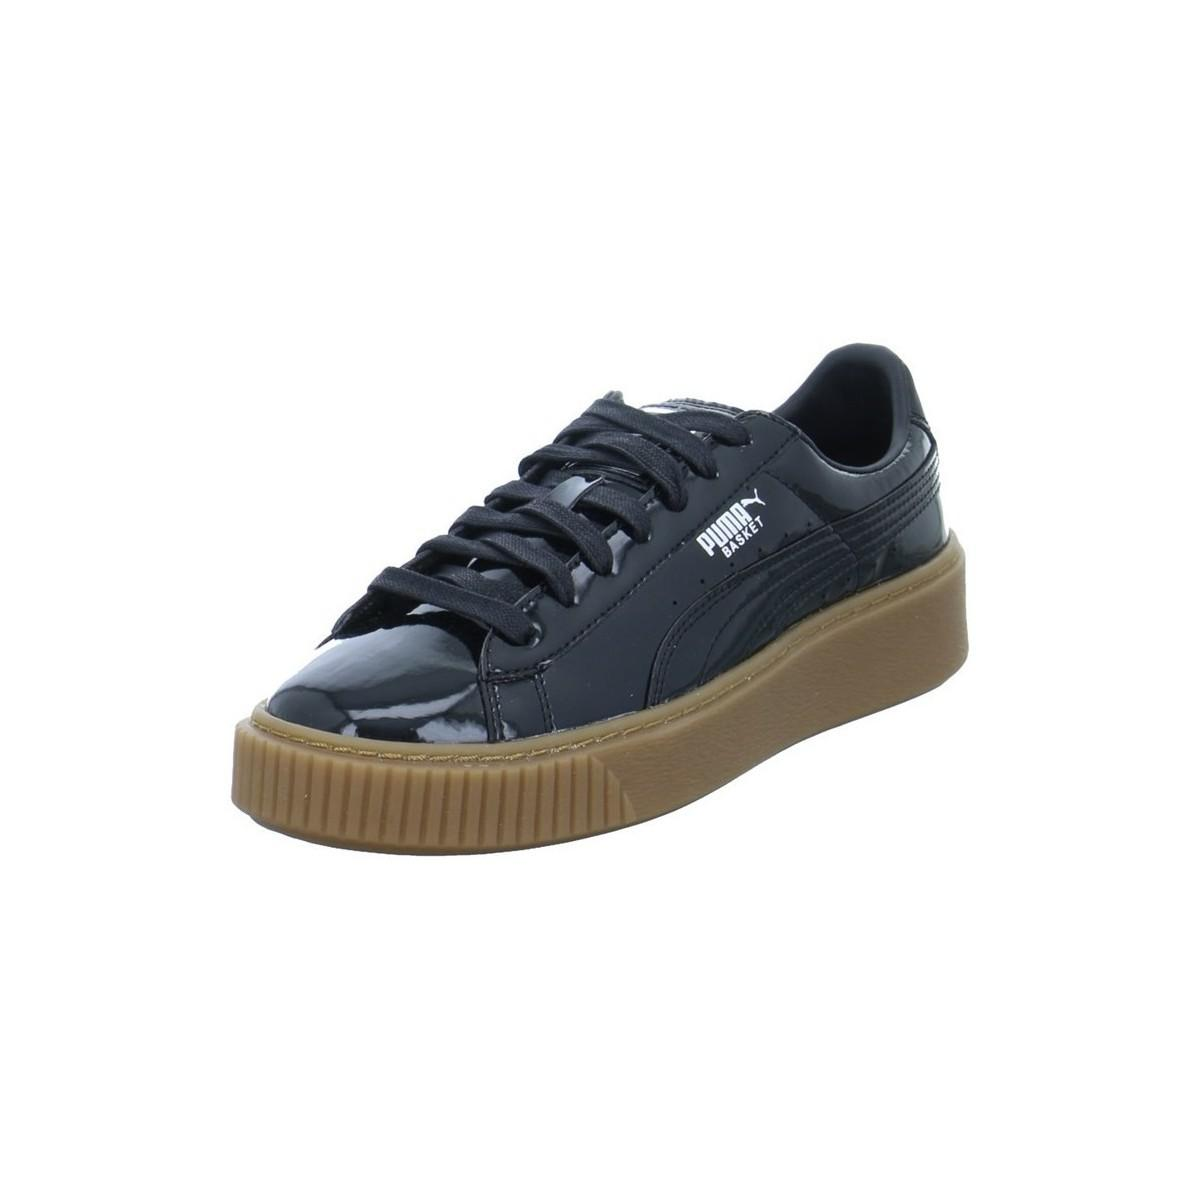 Puma Basket Platform Patent Women s Shoes (trainers) In Black in ... 9b60bbebc